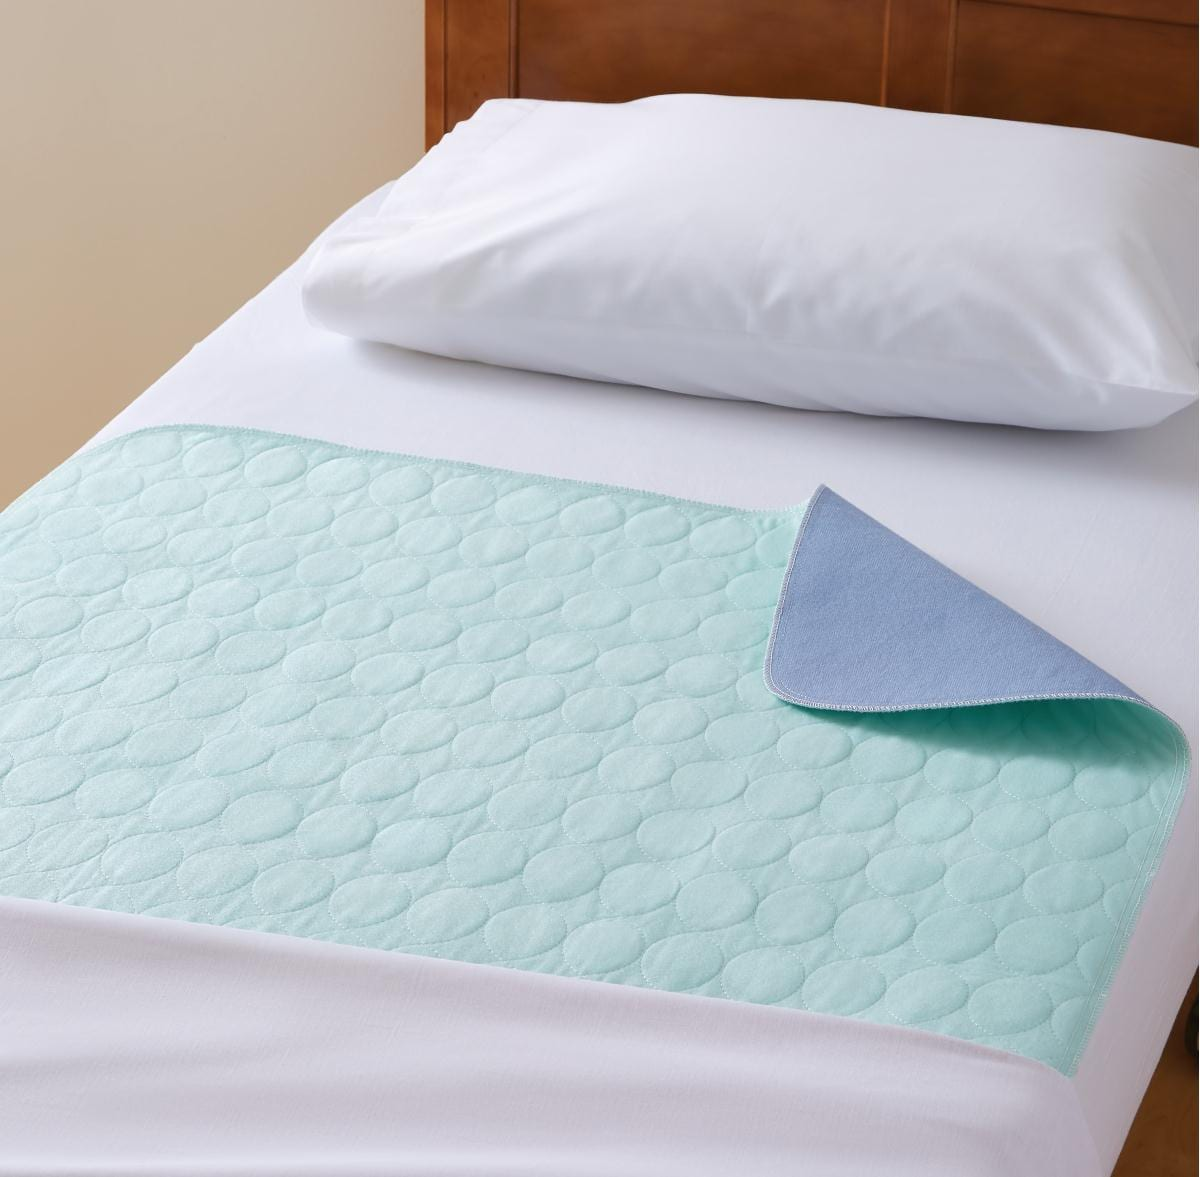 Are you in need of fabric furniture protectors